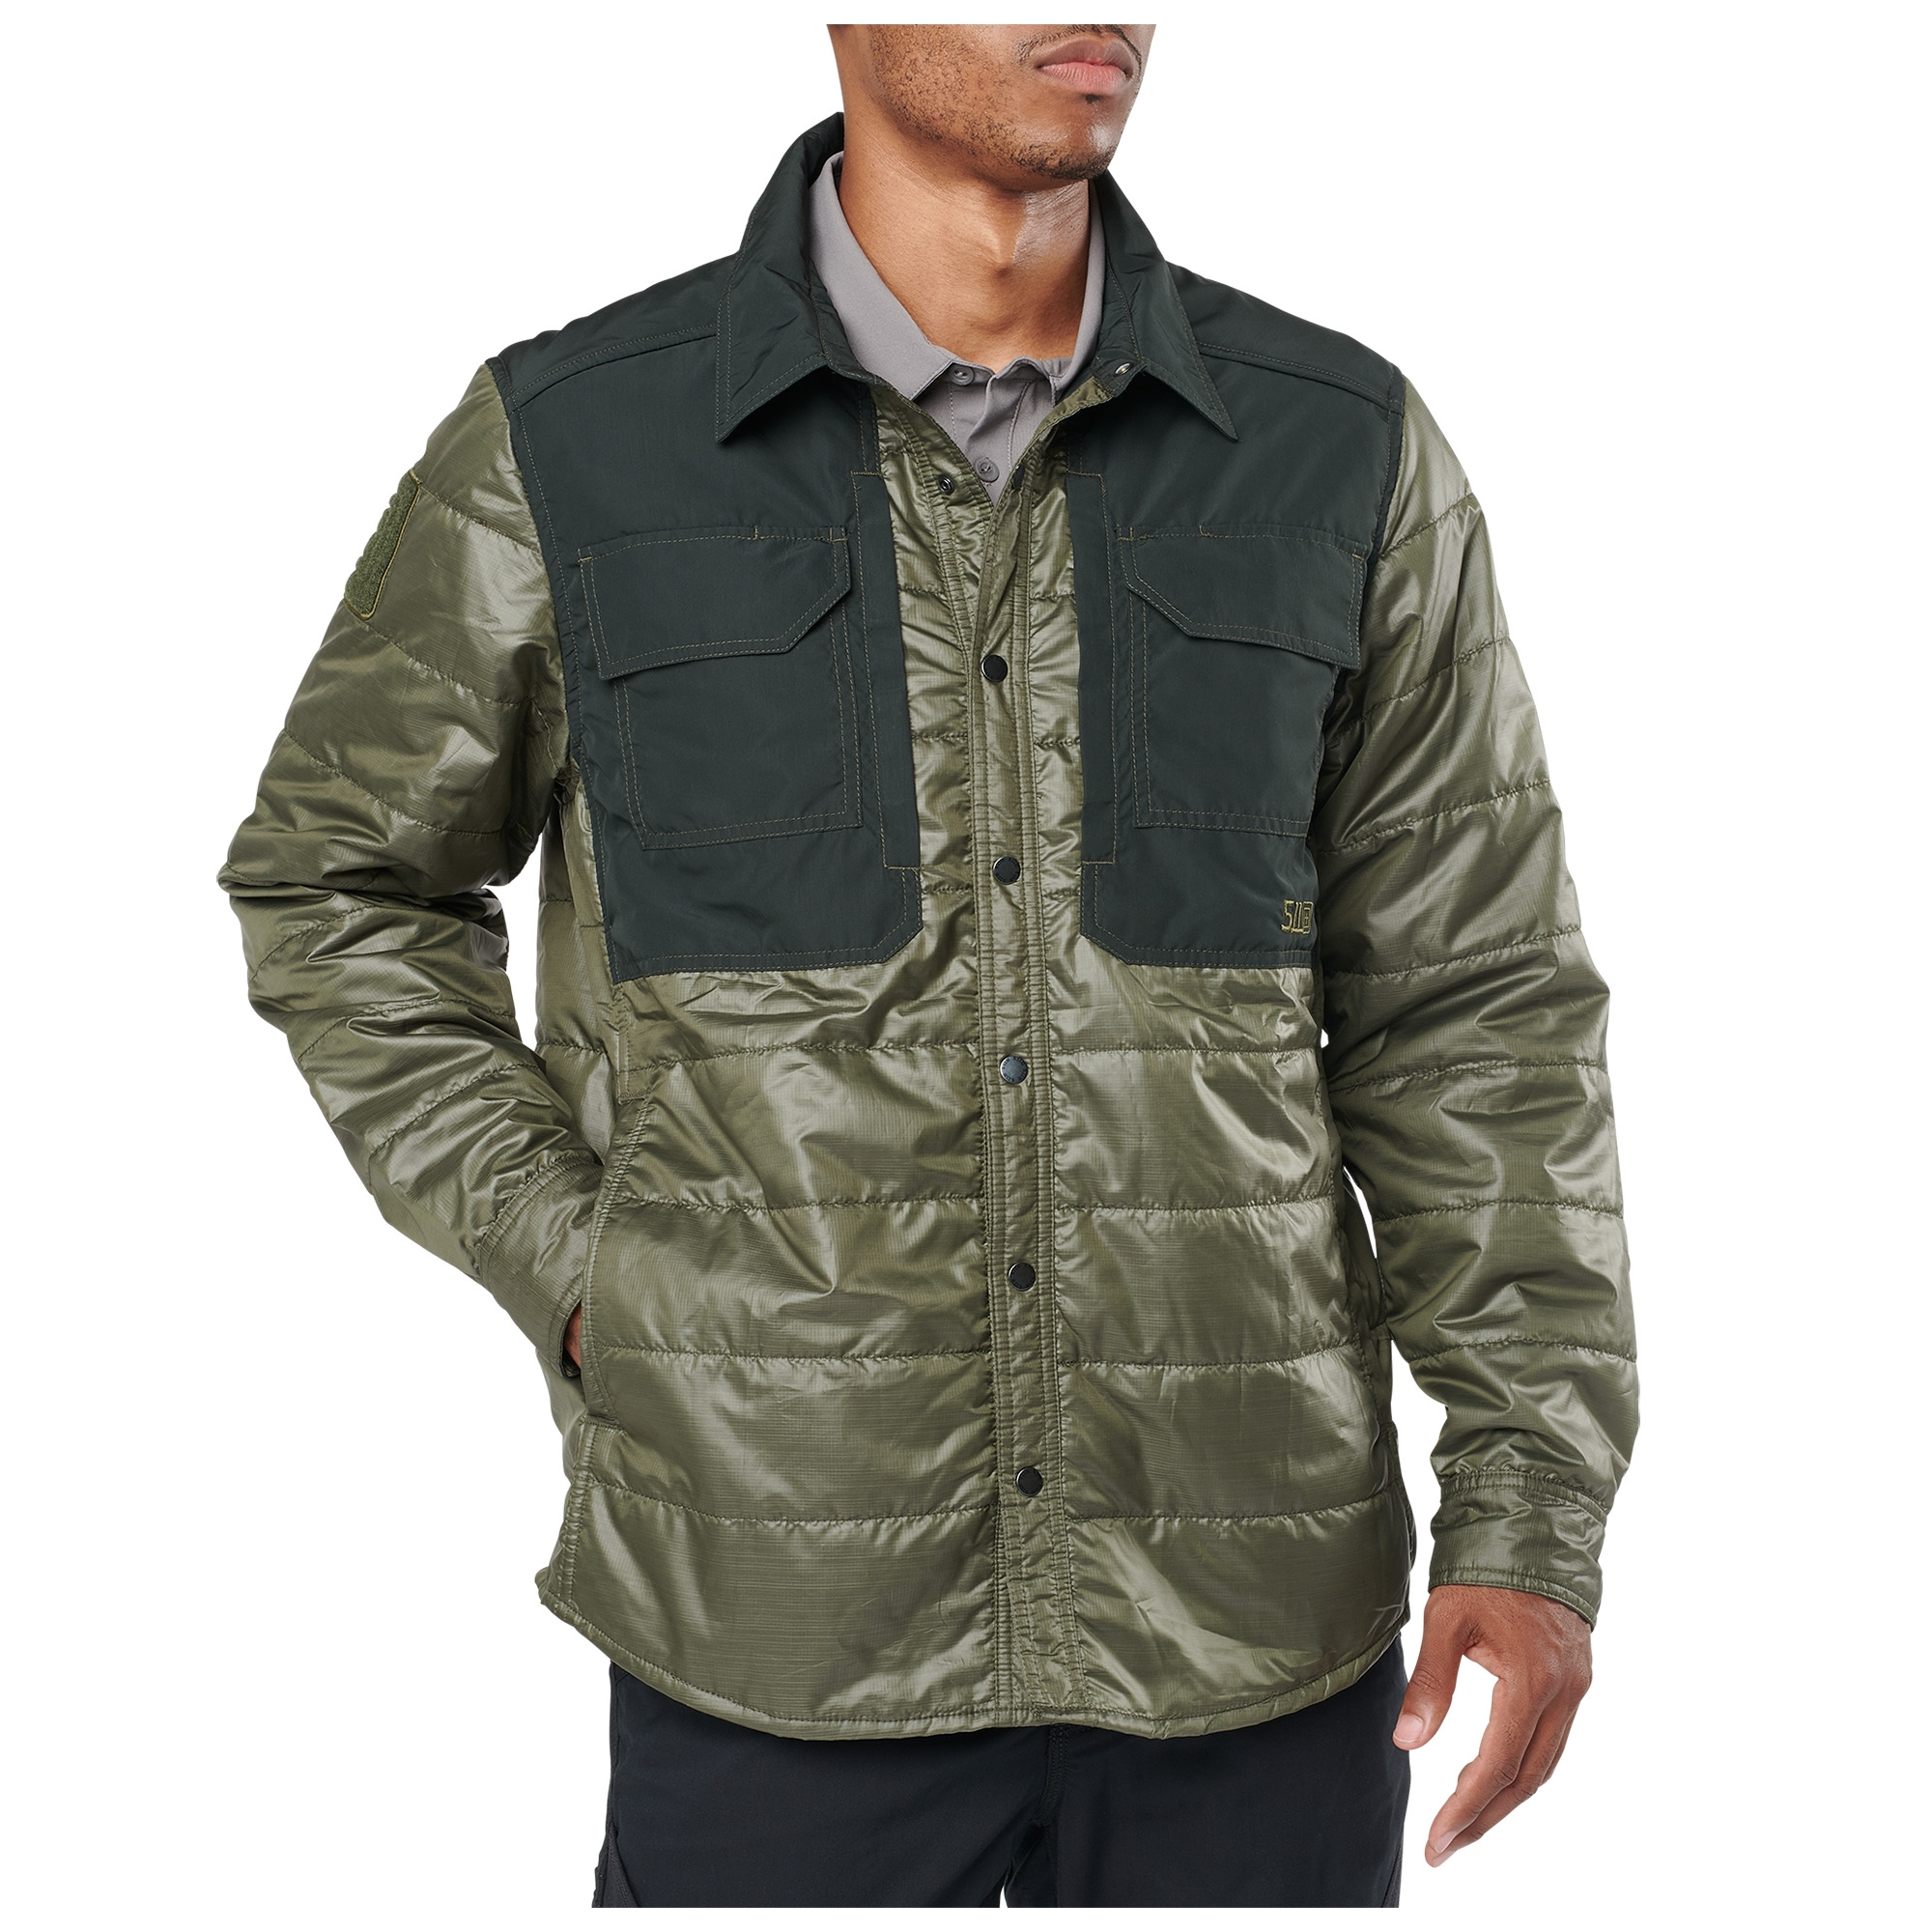 5.11 Tactical Men's Peninsula Insulator Shirt Jacket (Green)